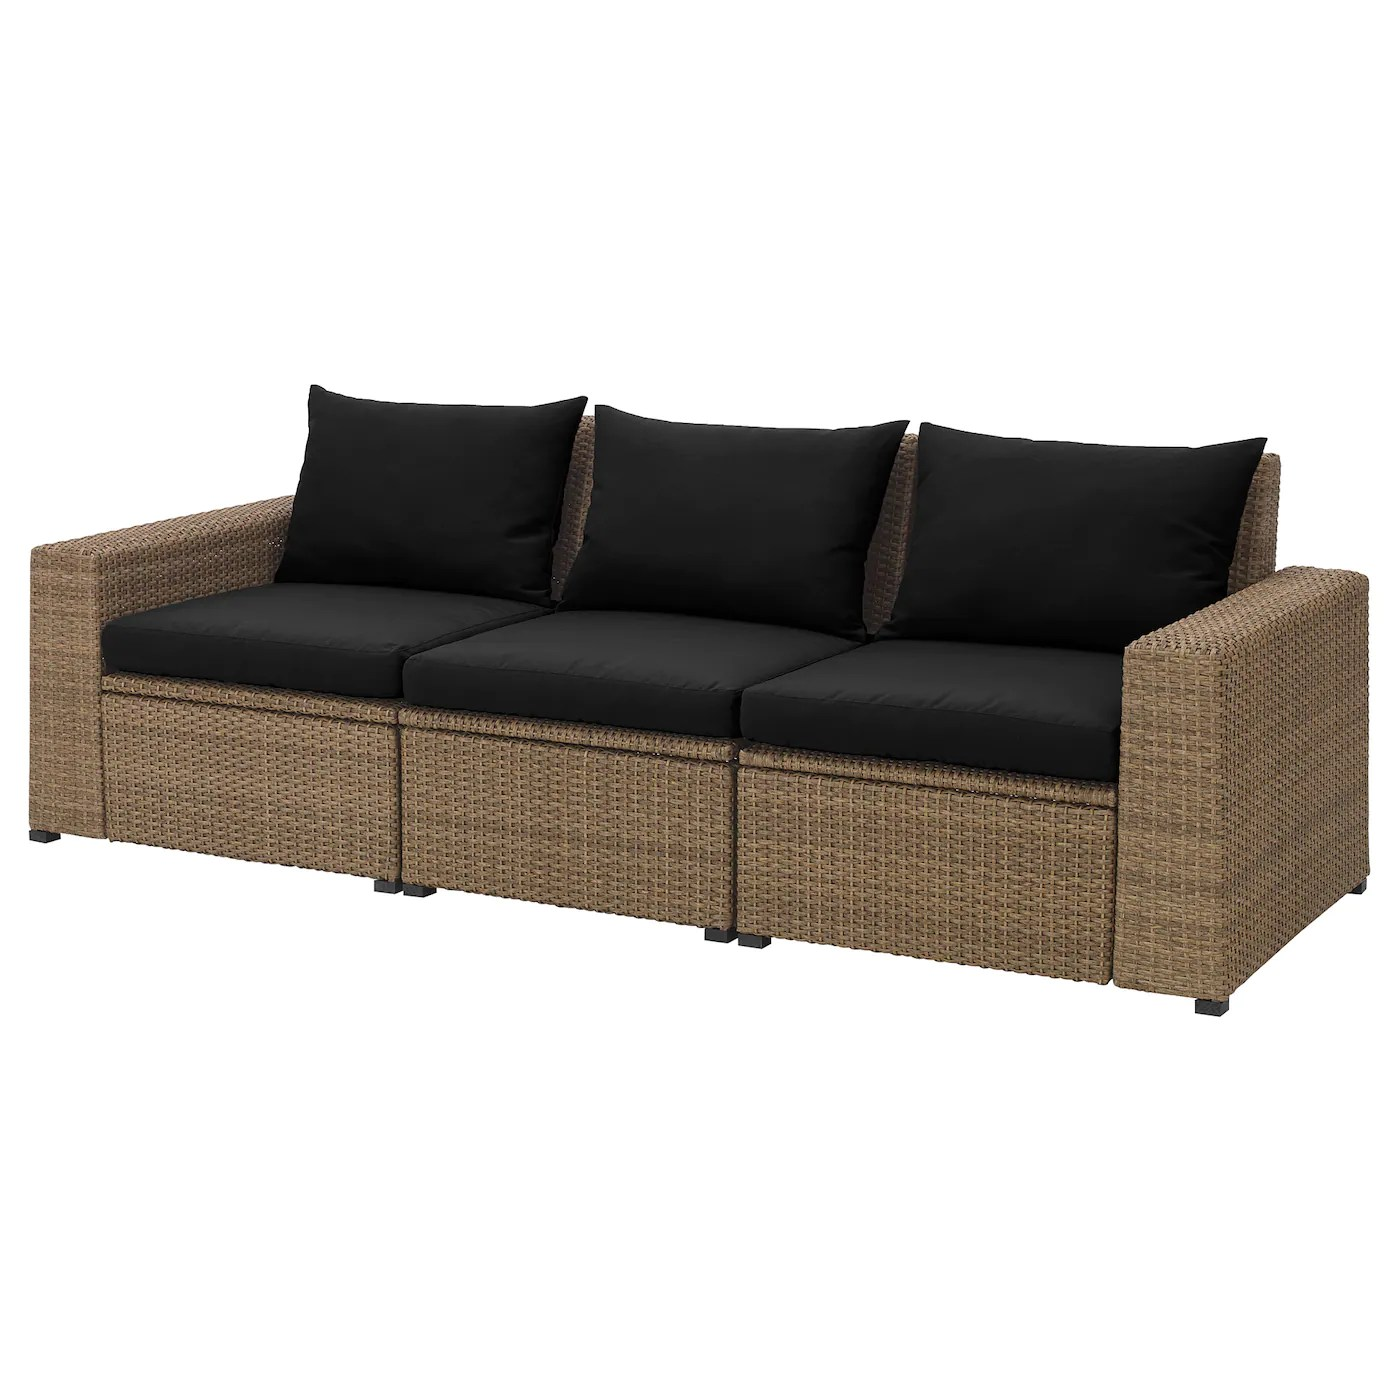 Garden Sofa Two Seater Outdoor Garden Sofas Ikea